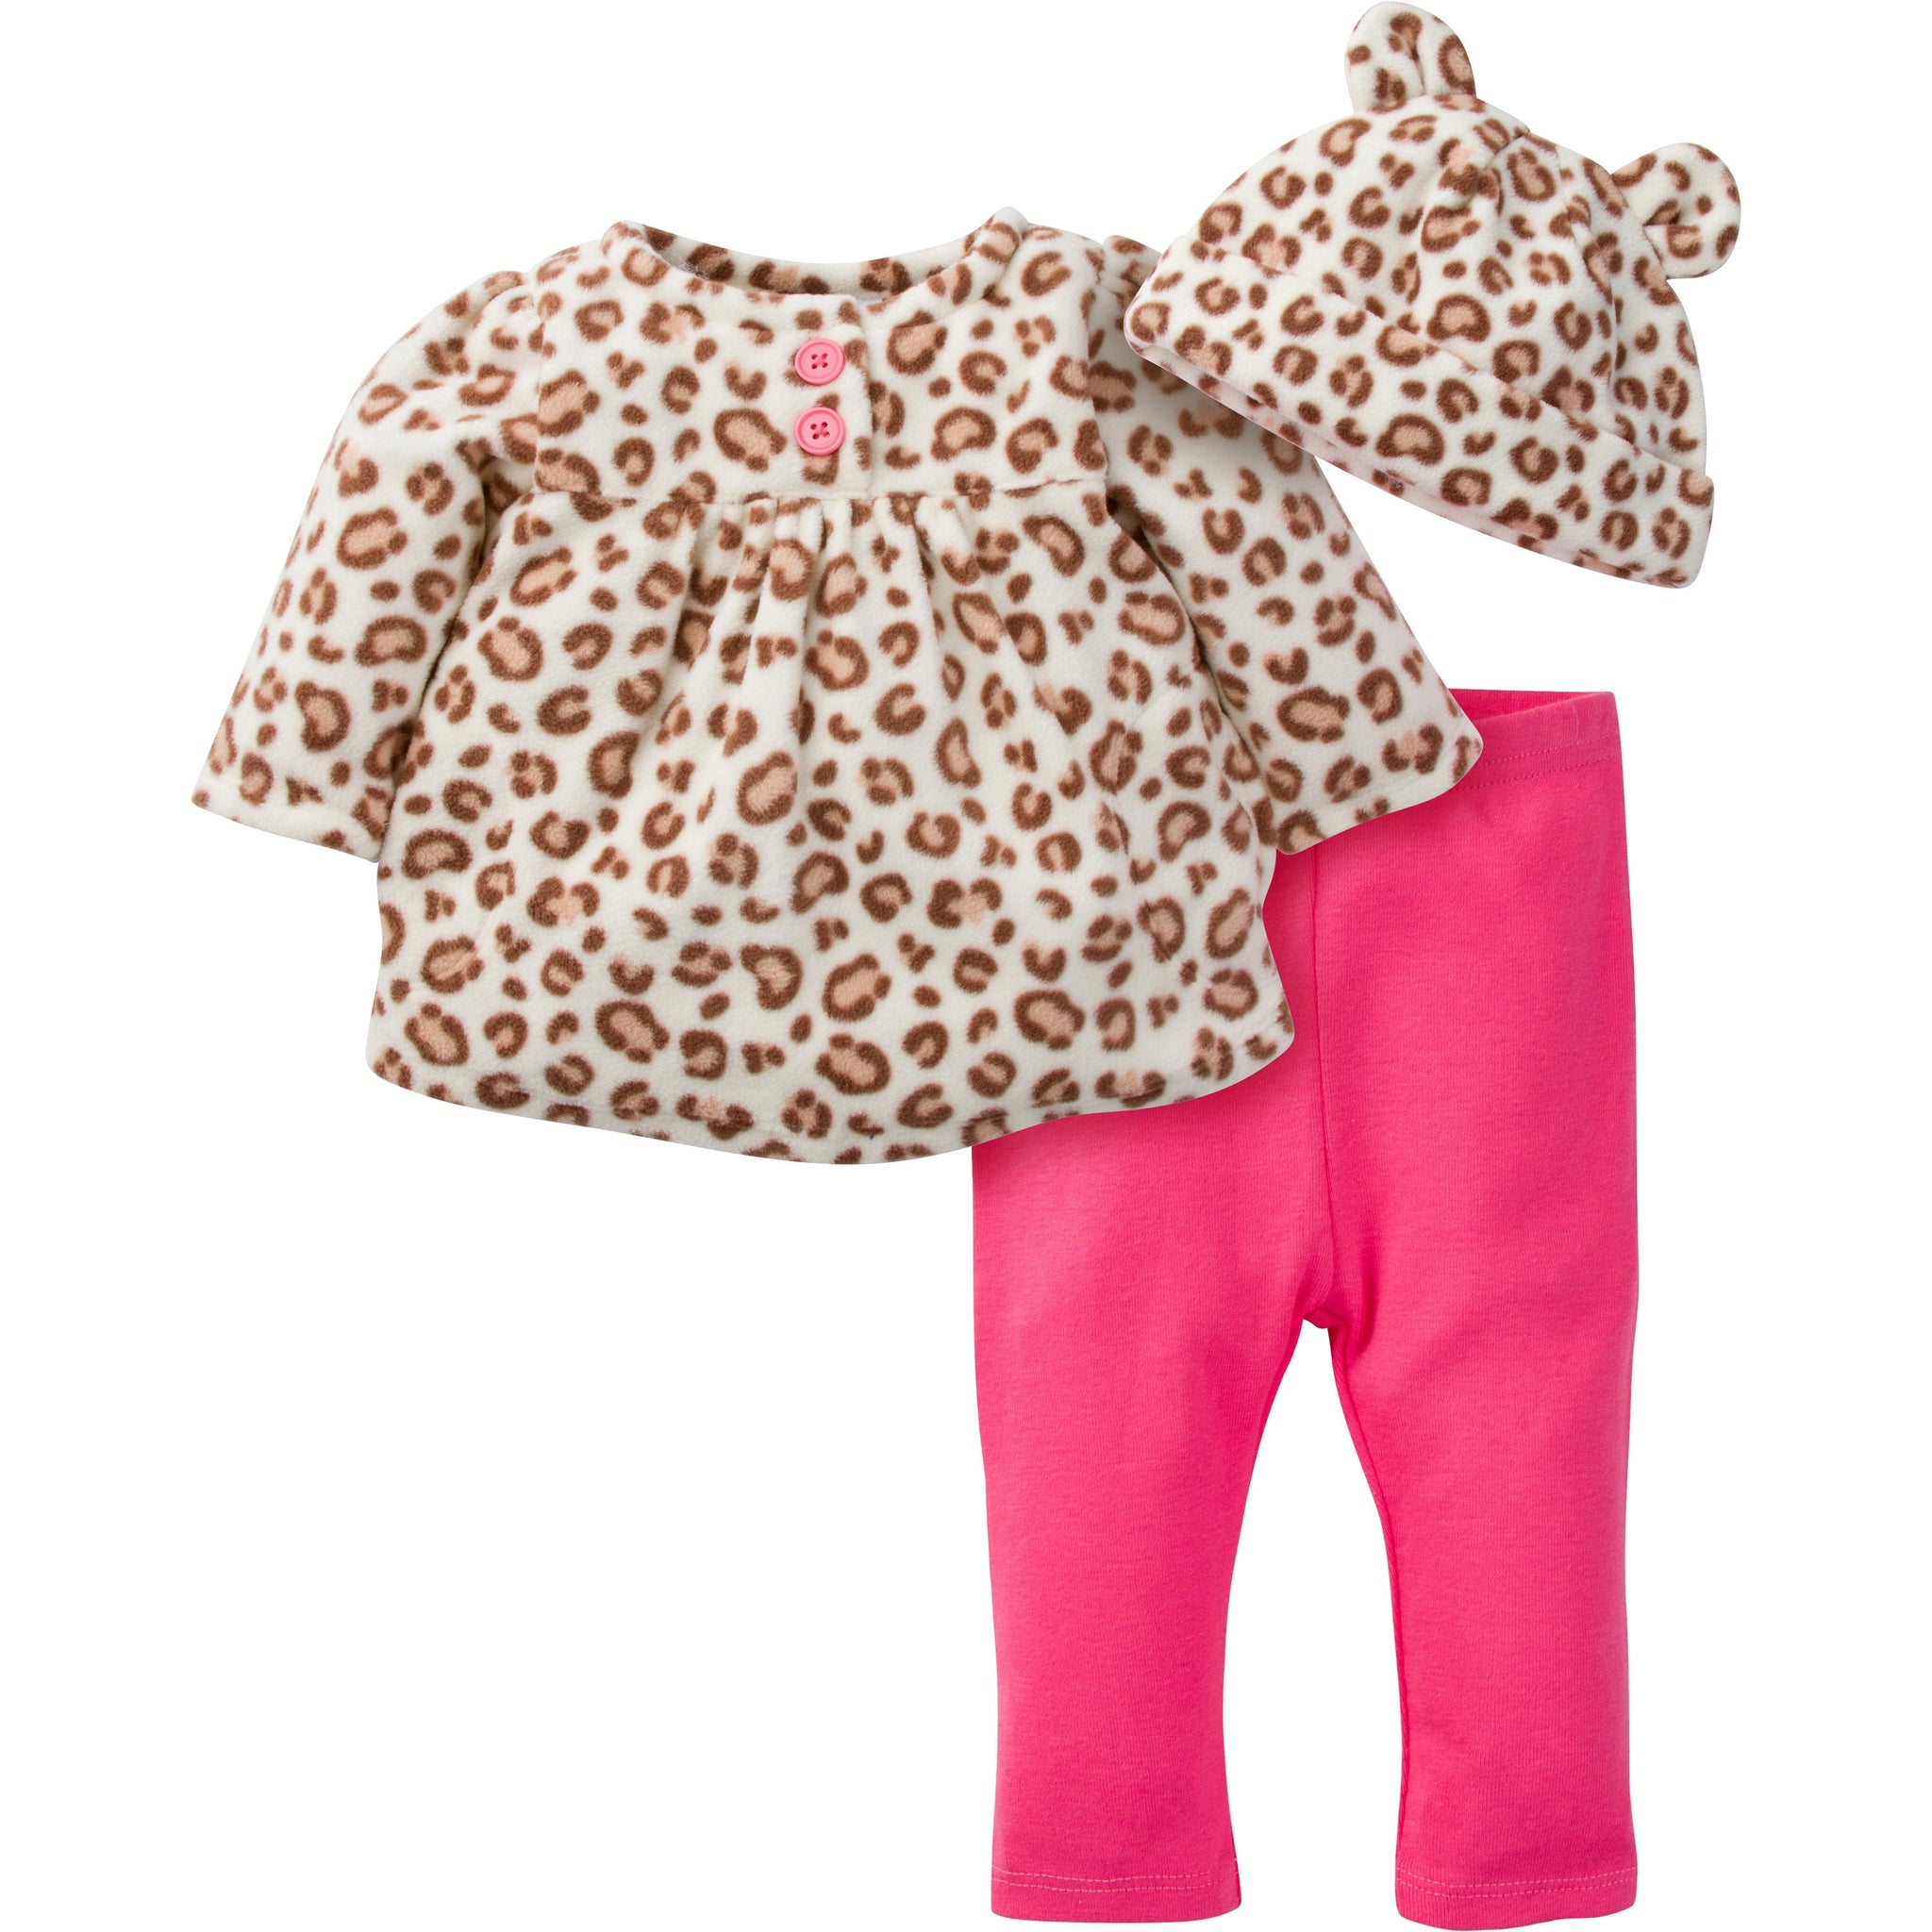 Gerber Baby 3 Piece Micro Fleece Top, Pant and Cap Set, leopard